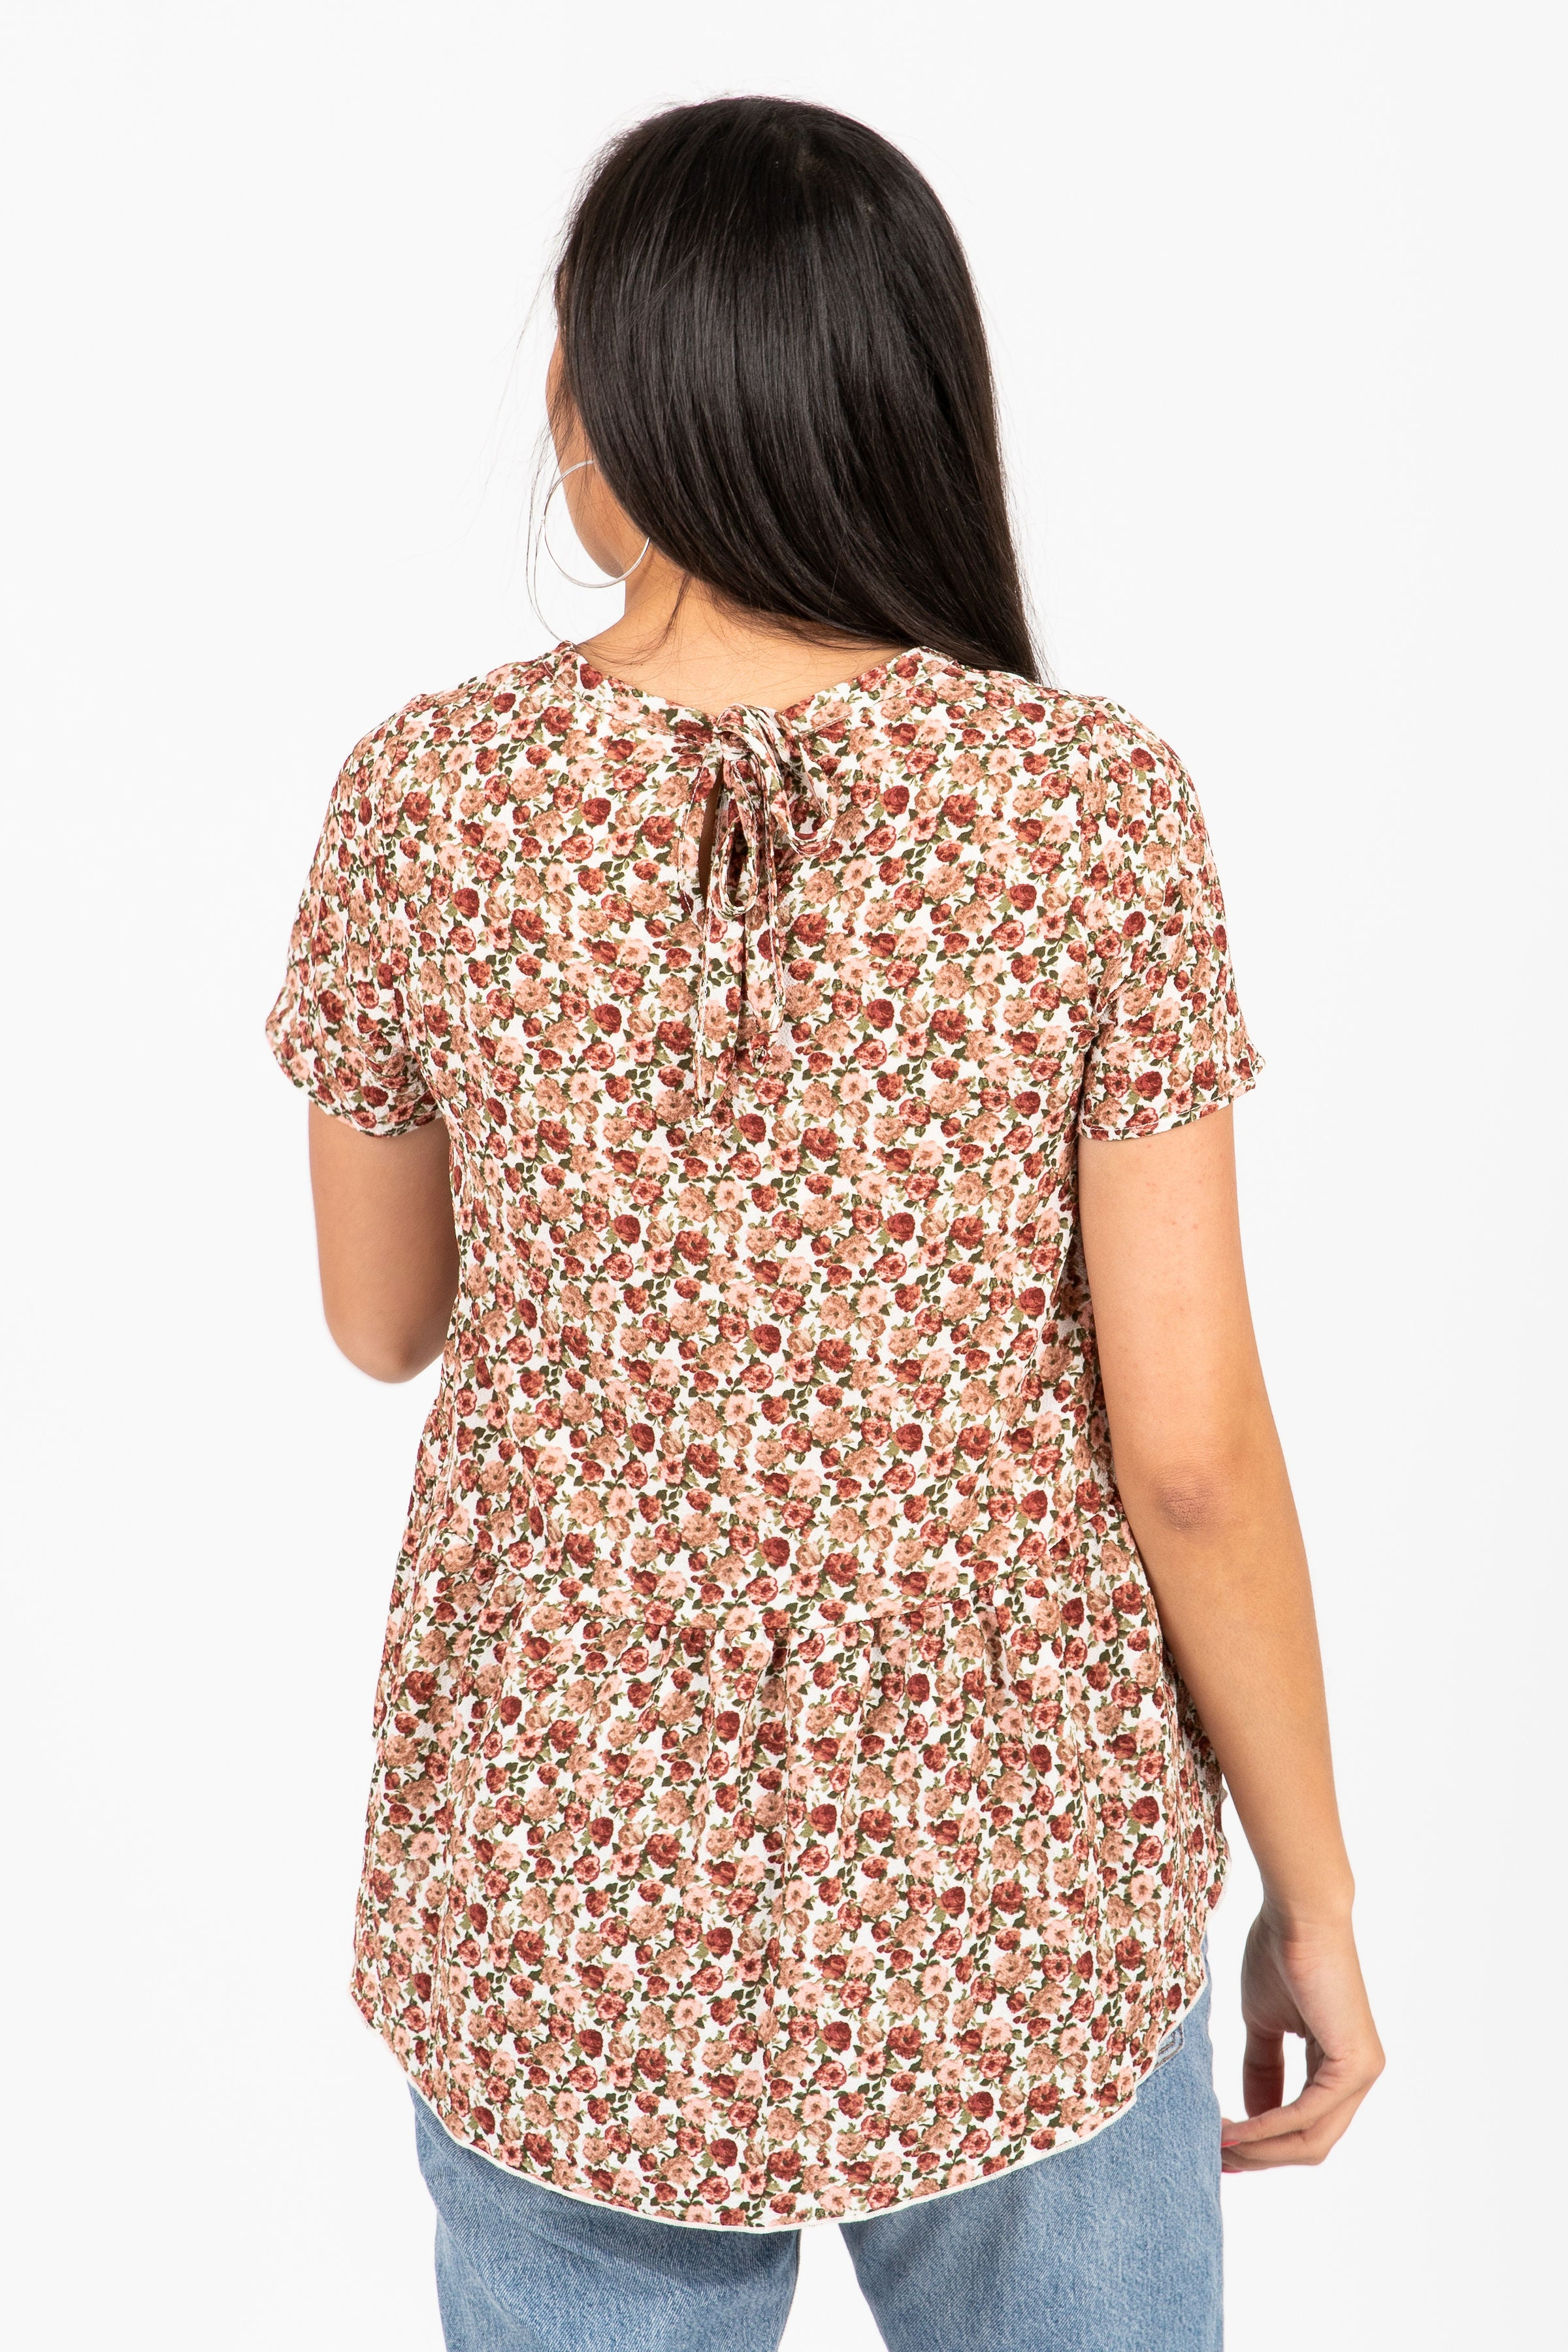 The Sphynx Floral Bow Peplum Blouse in Mauve